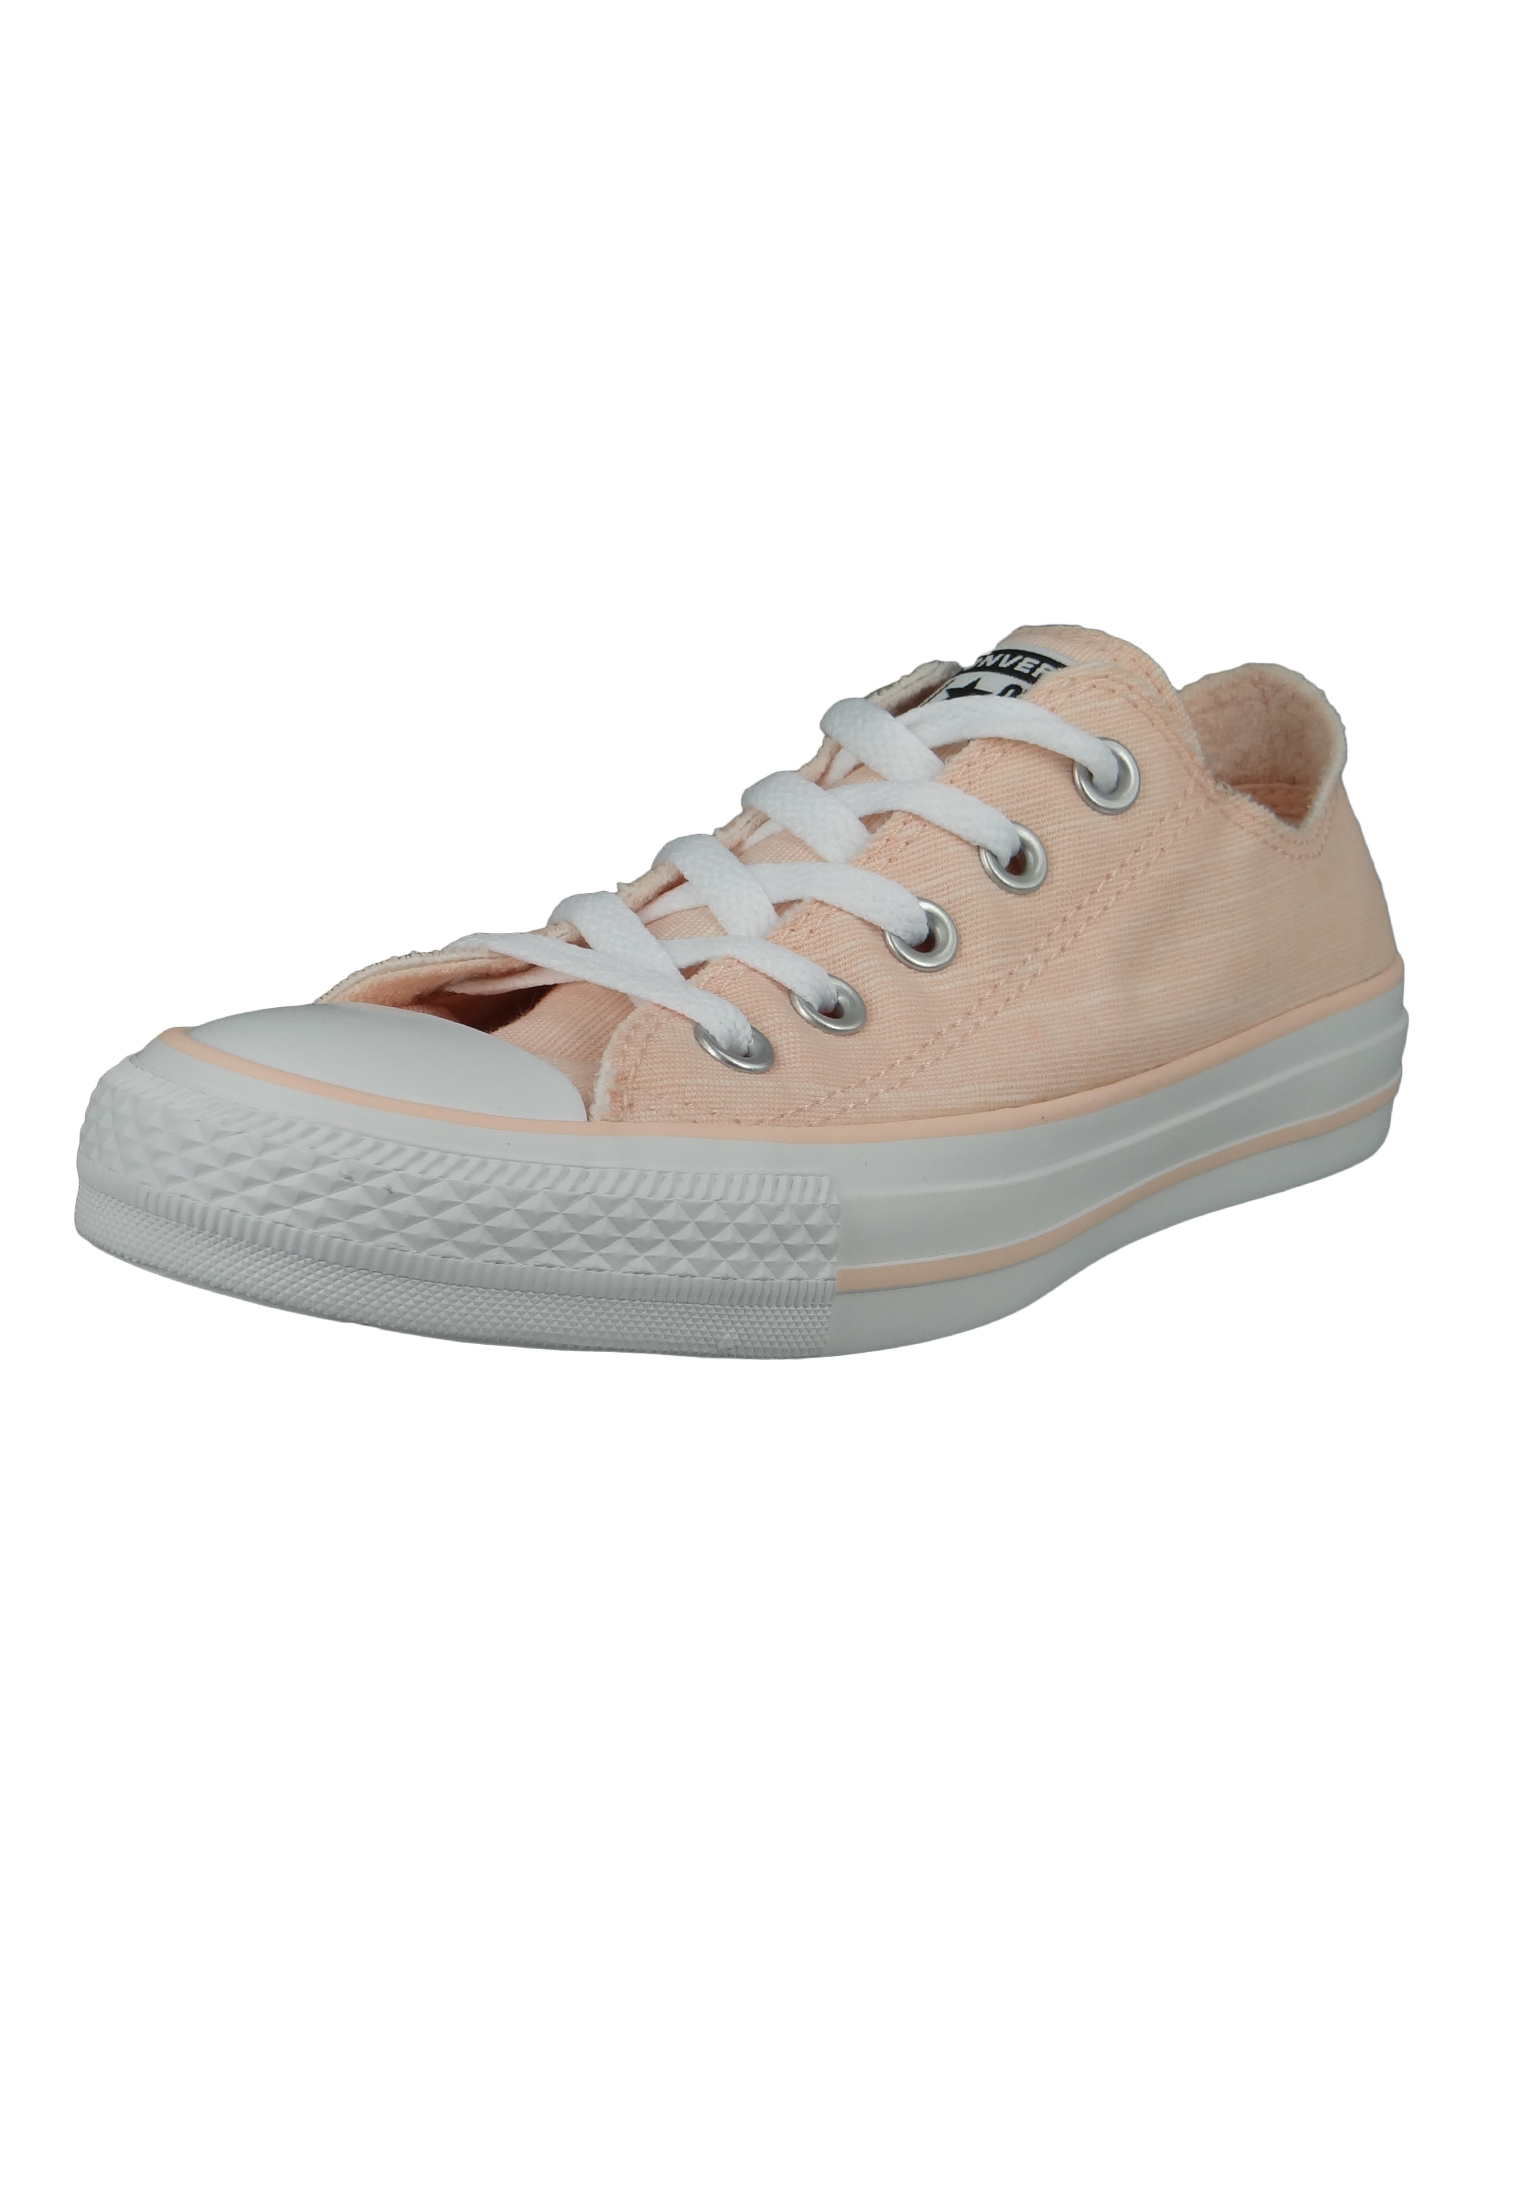 Converse Chucks Rosa 564343C Chuck Taylor All Star OX Washed Coral White